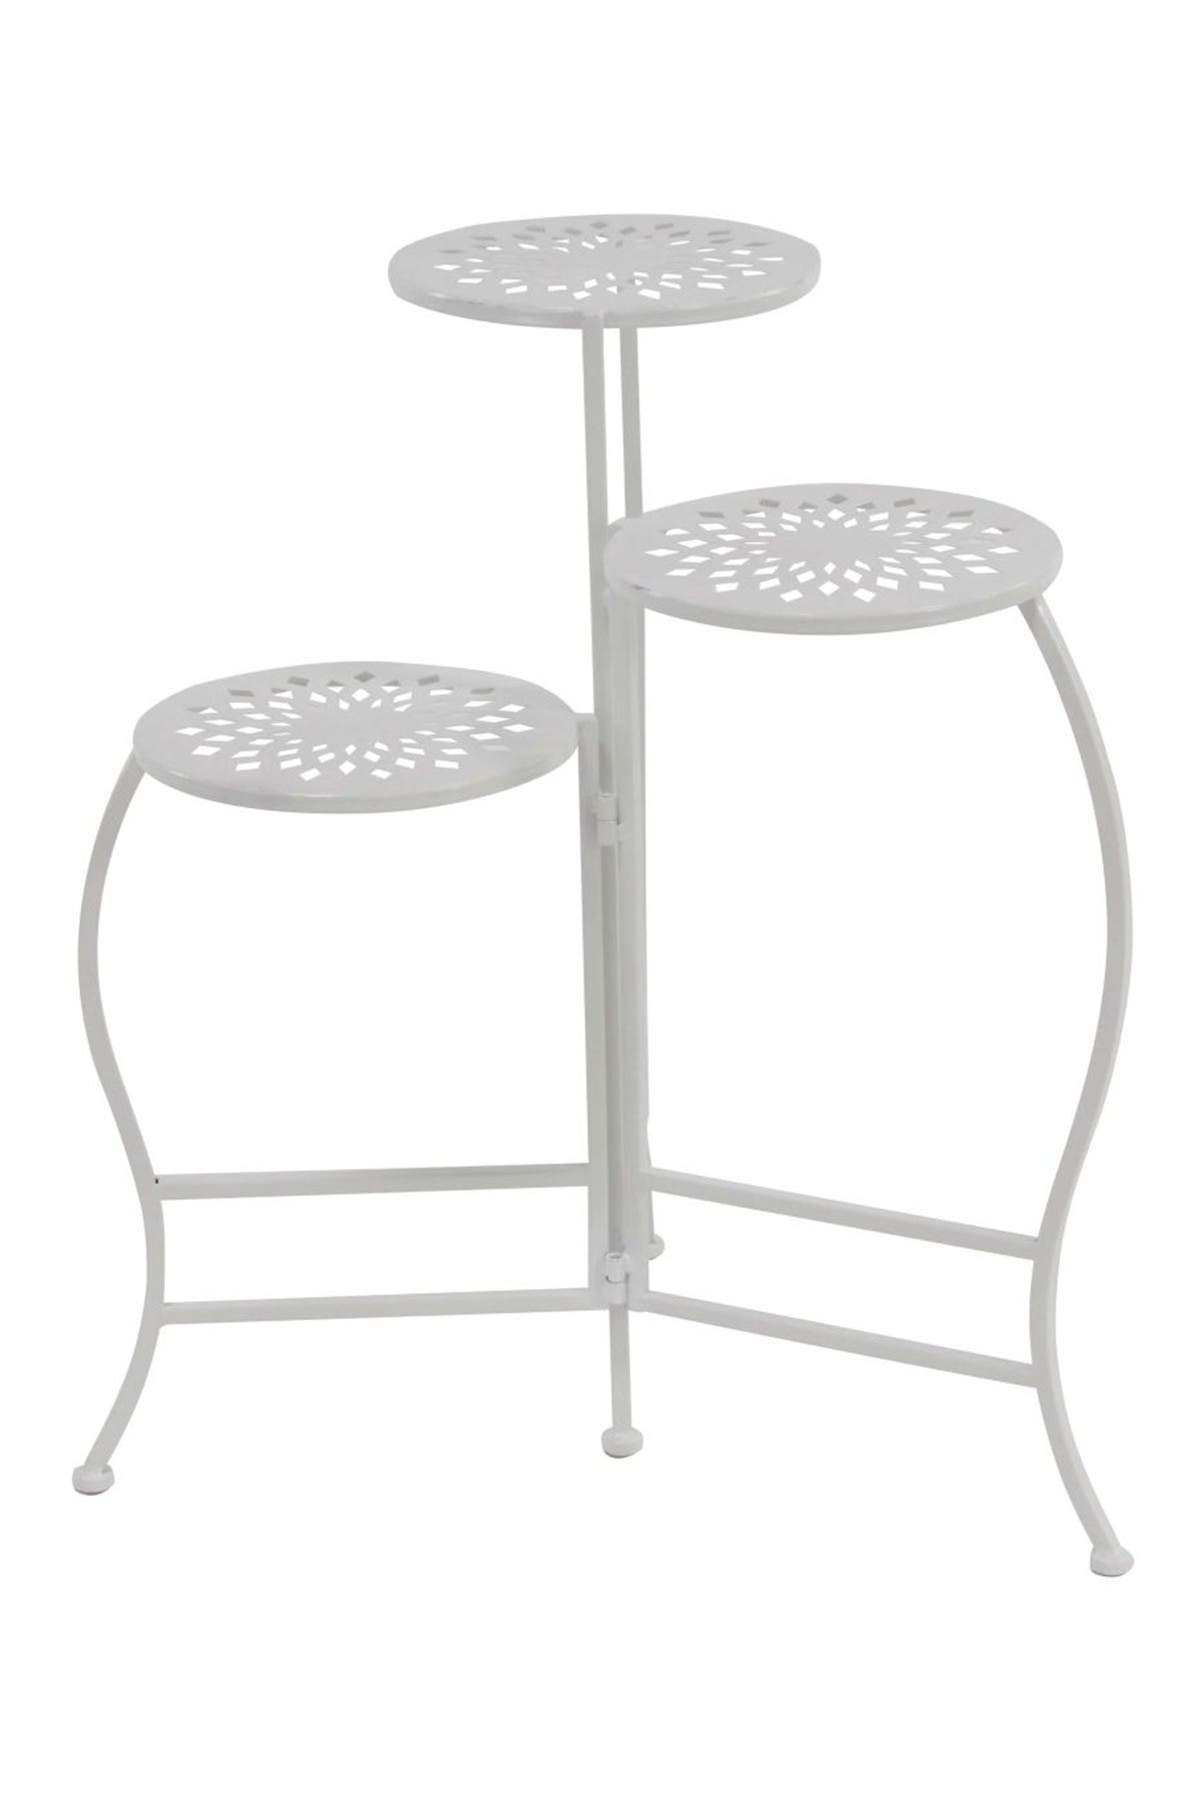 Image of Willow Row White Folding Plant Stand